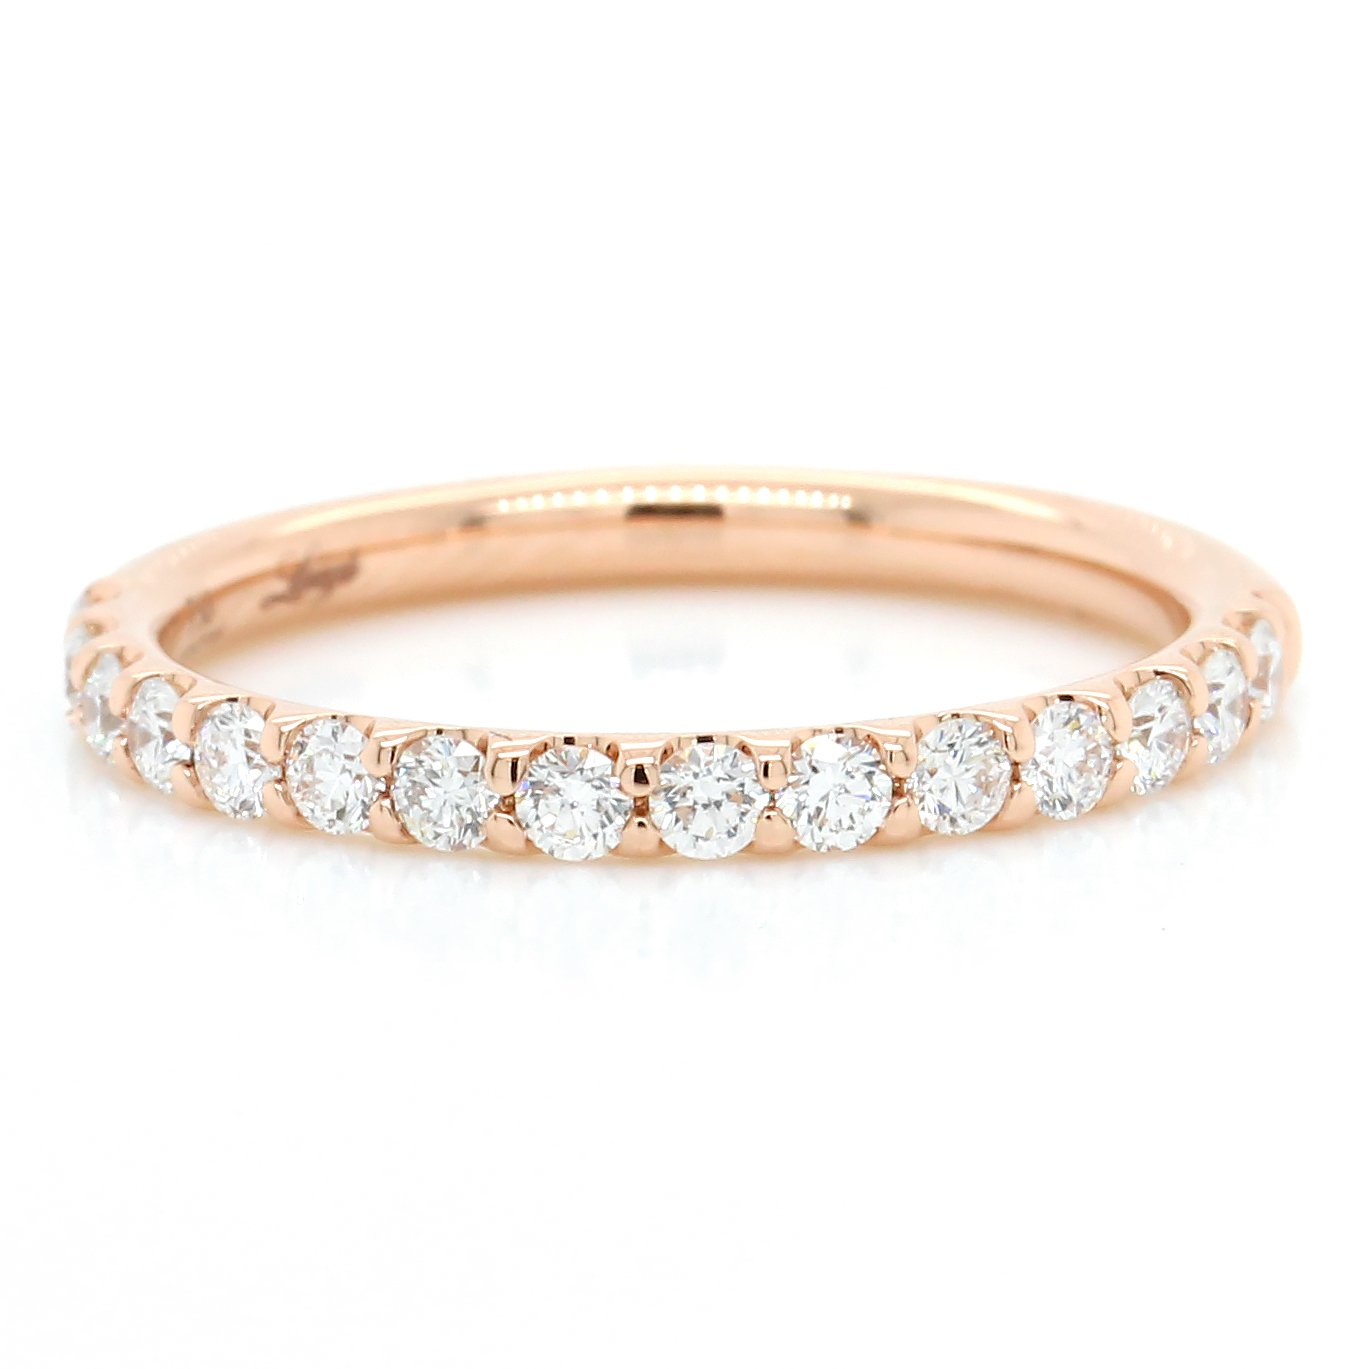 18K Rose Gold Prong Set Diamond Band